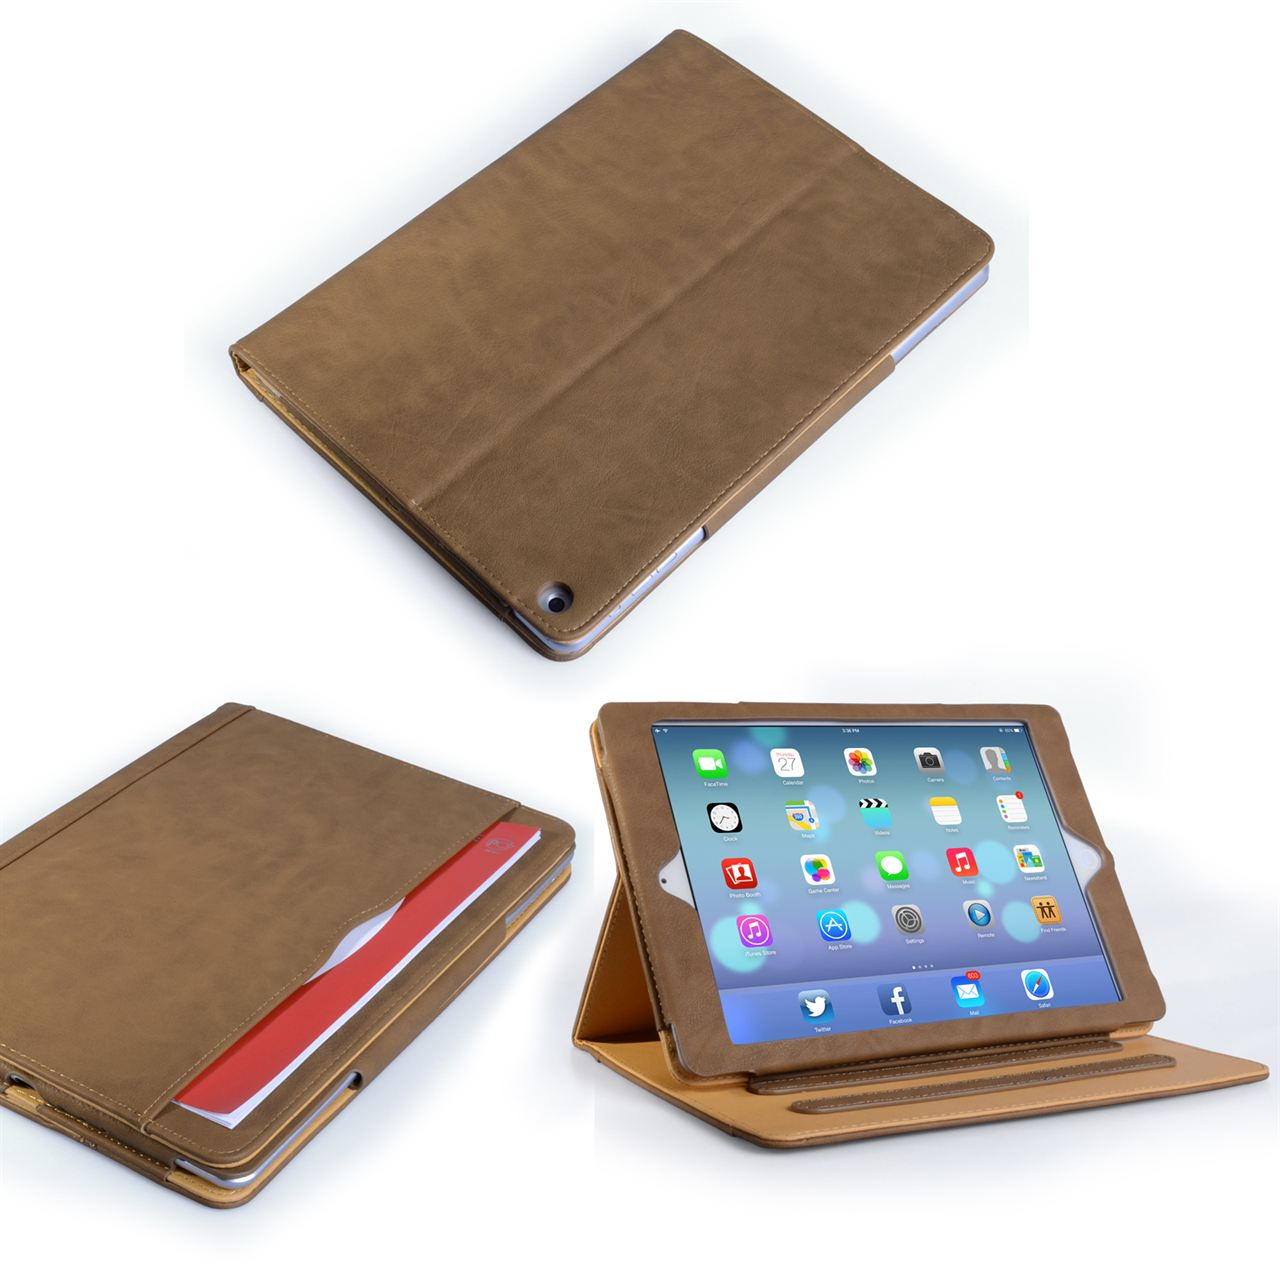 Caseflex iPad Air Textured Faux Leather Stand Case - Brown and Tan